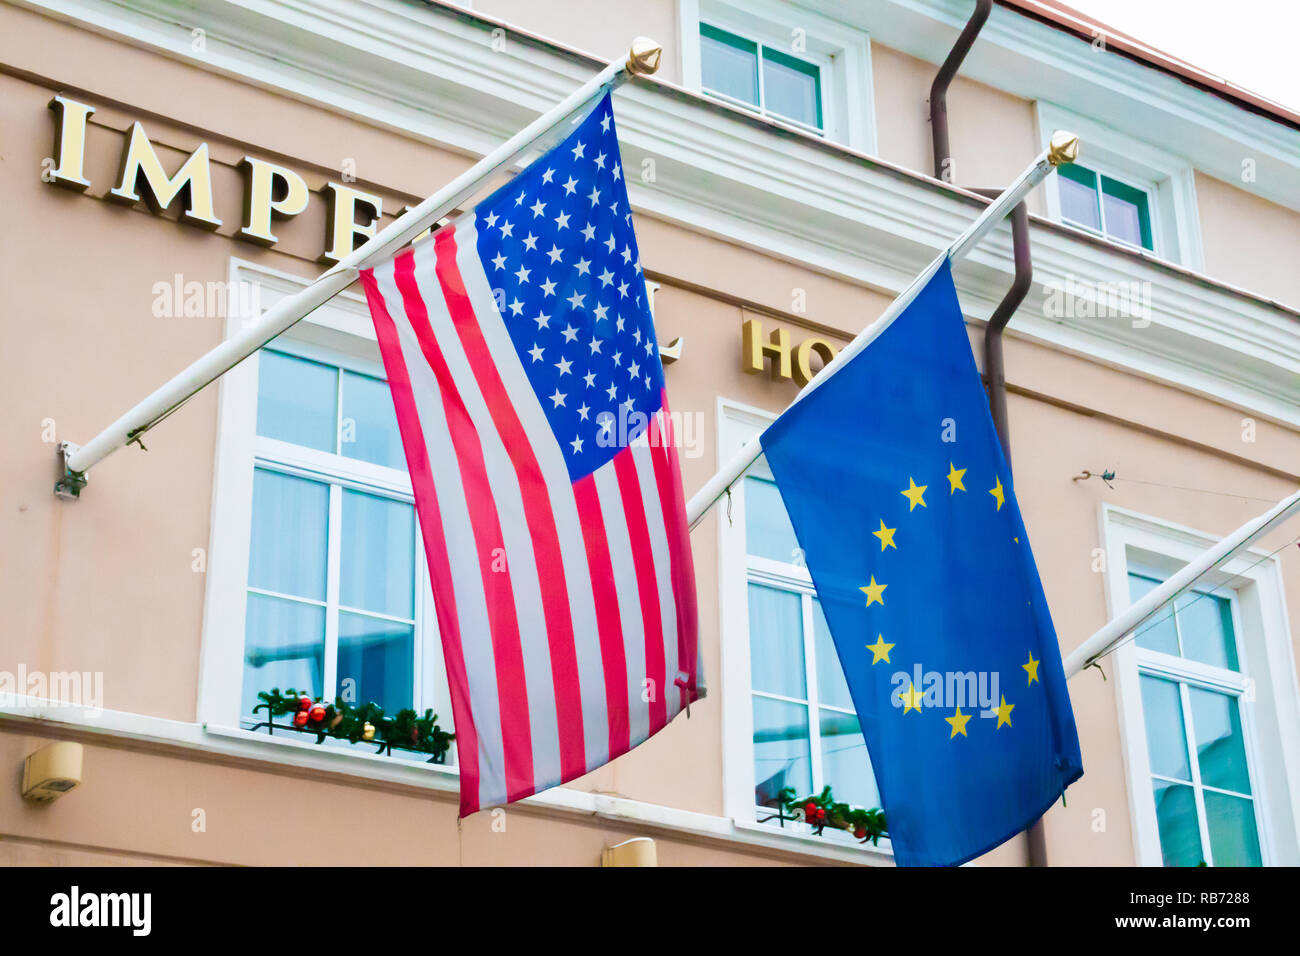 United States and European Union flags together - Stock Image